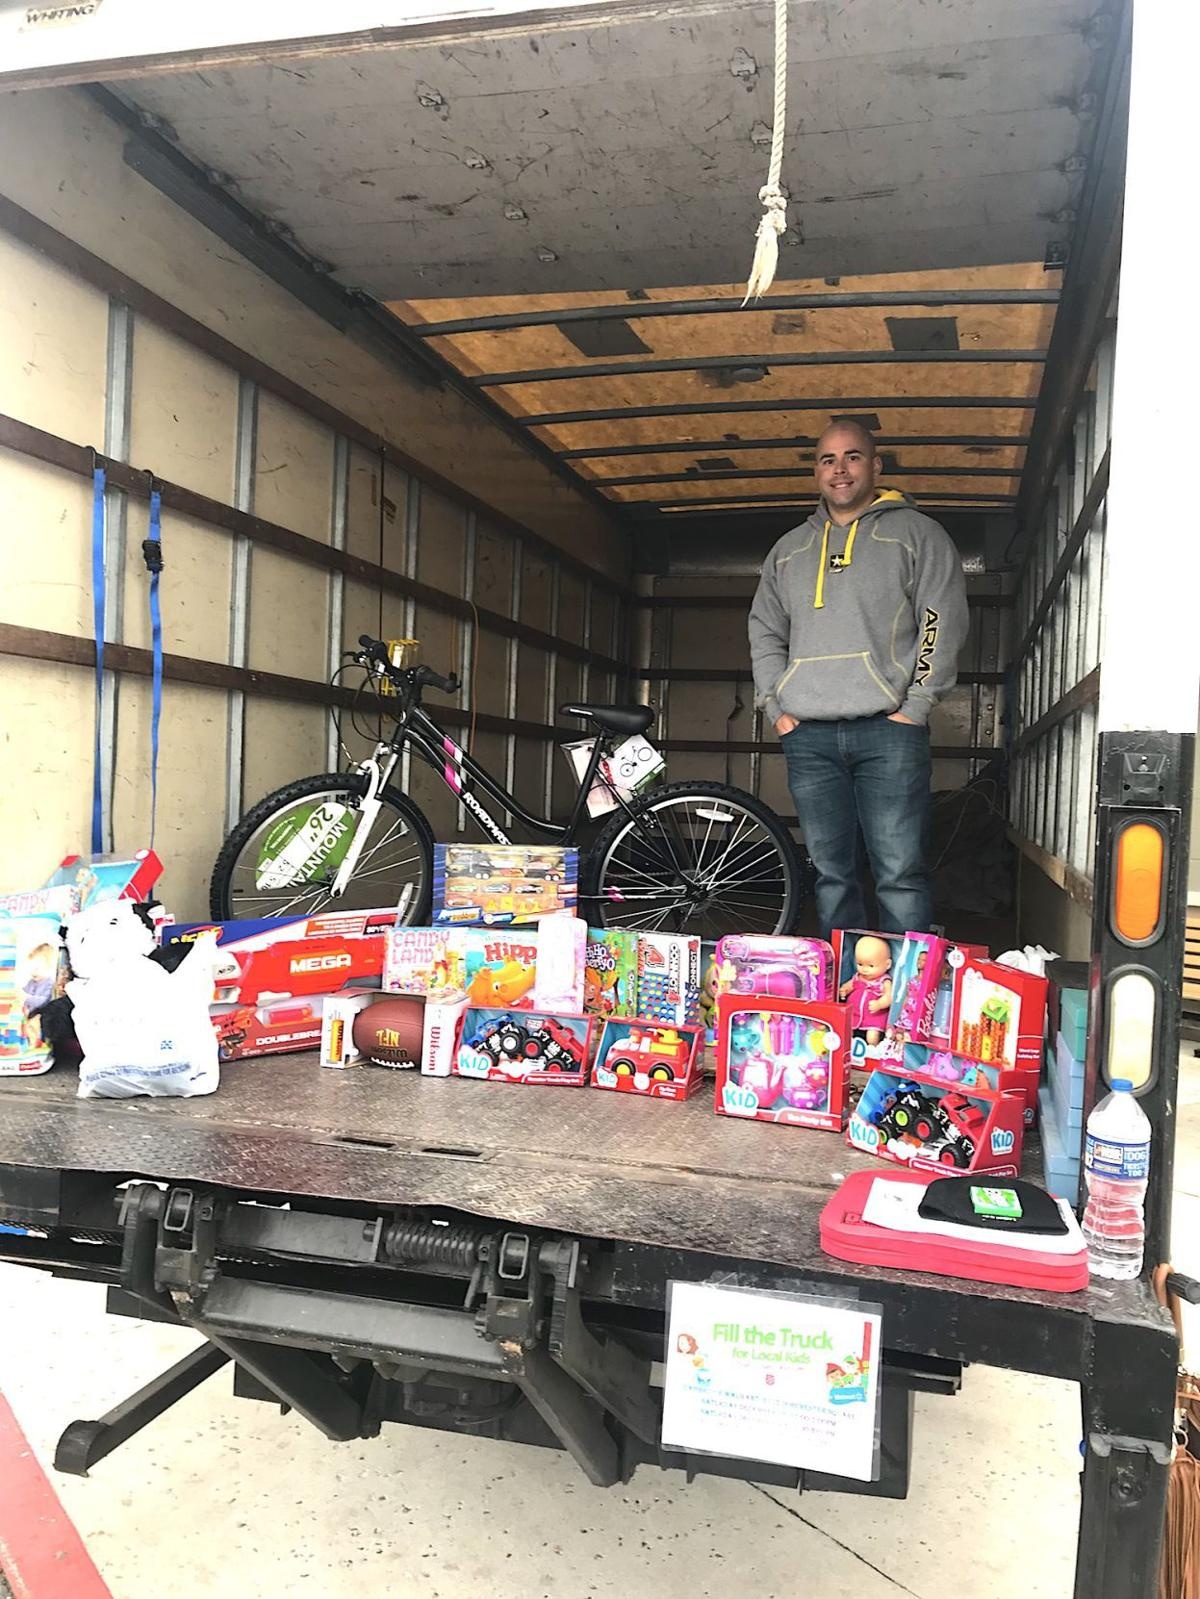 Filling the truck to fulfill Christmas wishes